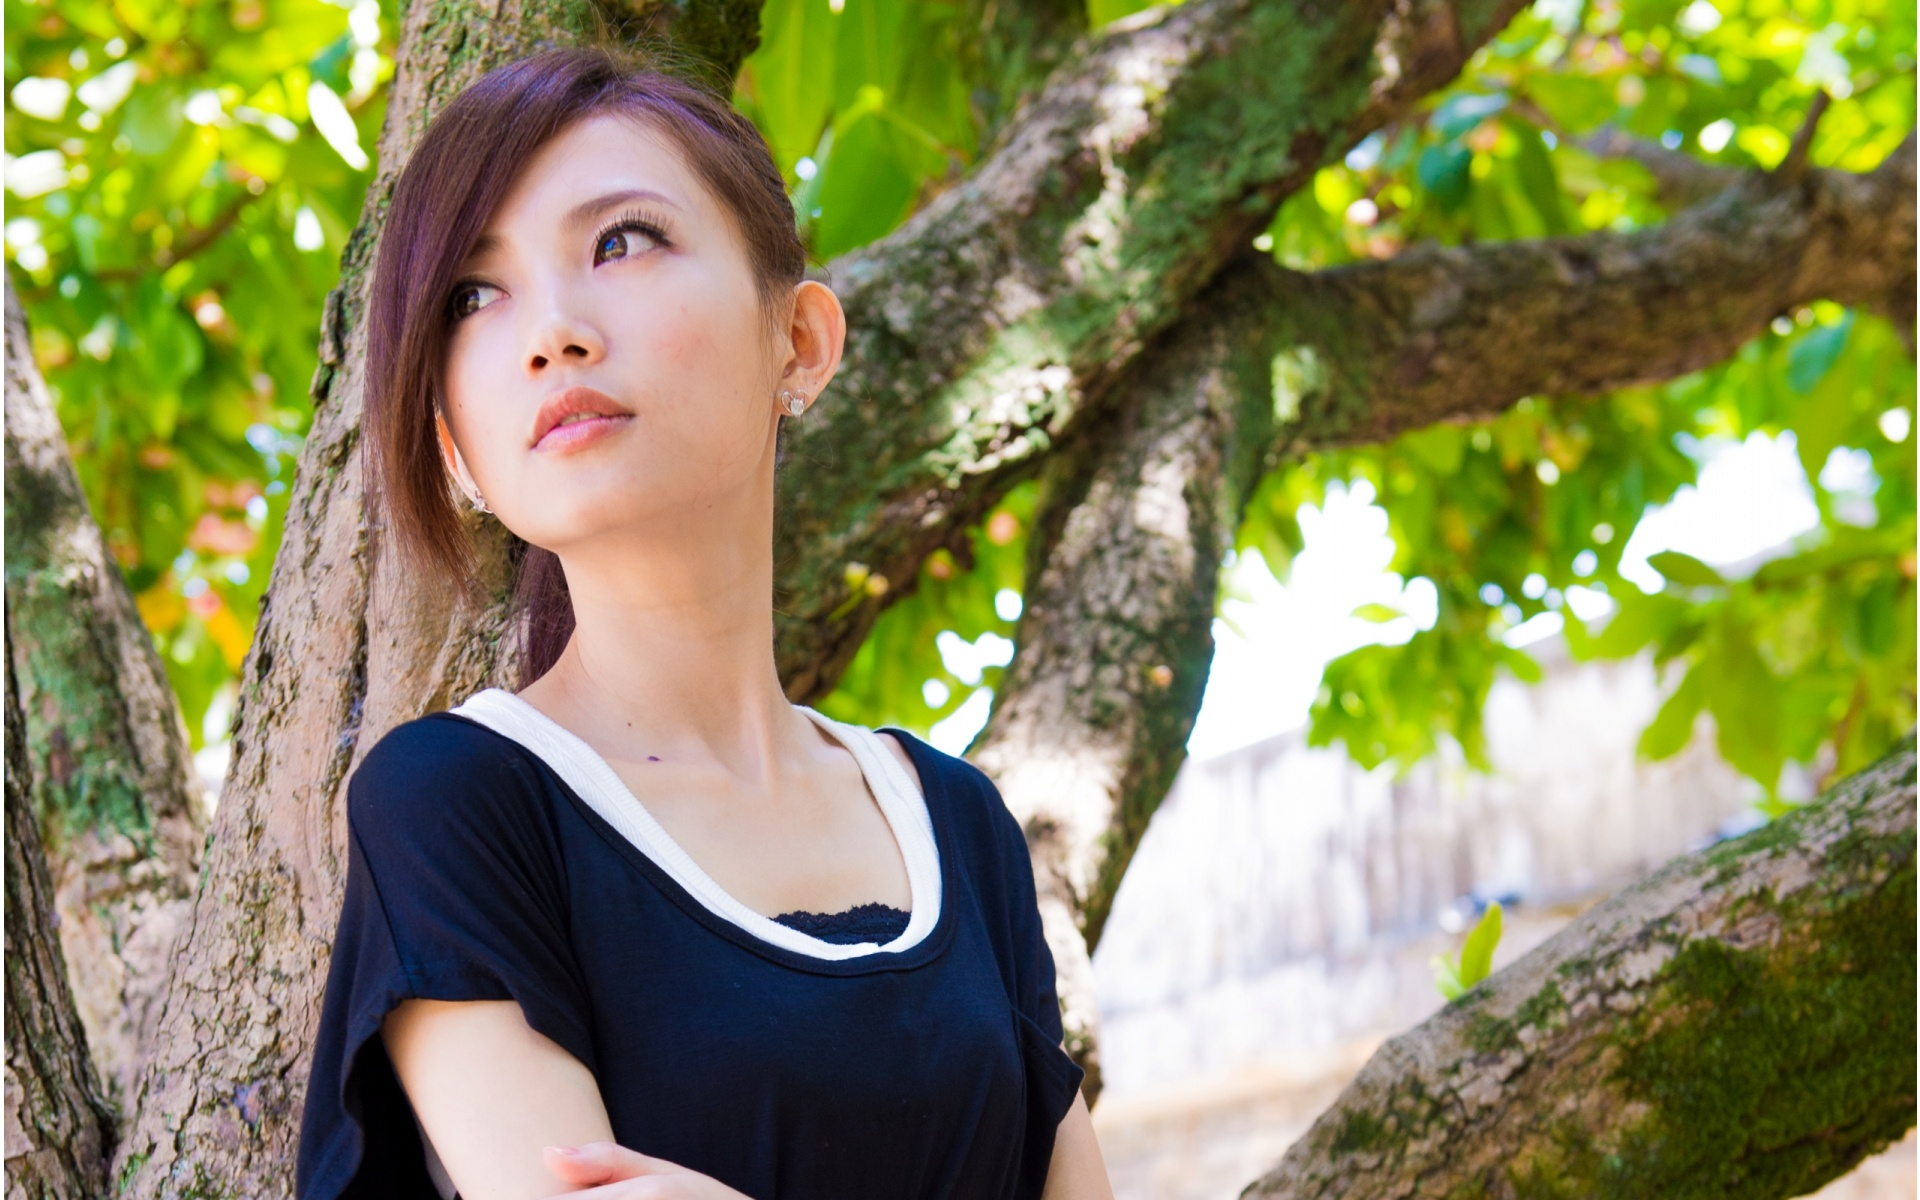 garden view asian girl personals Whether you are starting your garden from scratch or just looking to bring new life to a portion of your explore amazing gardens, view beautiful plants.